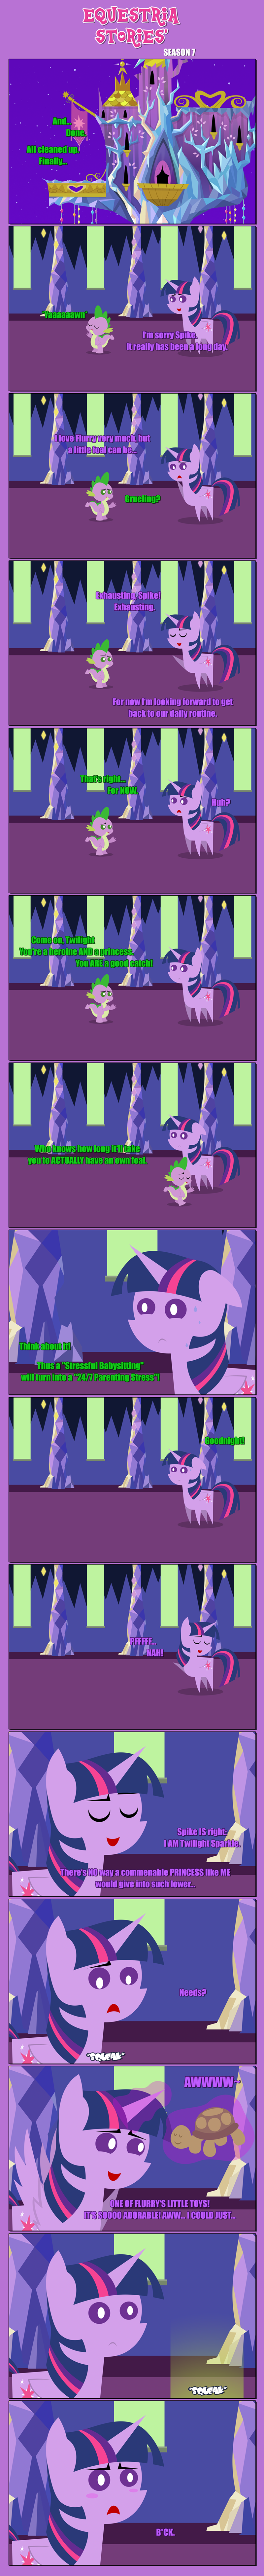 spike twilight sparkle estories comic a flurry of emotions - 9029908480